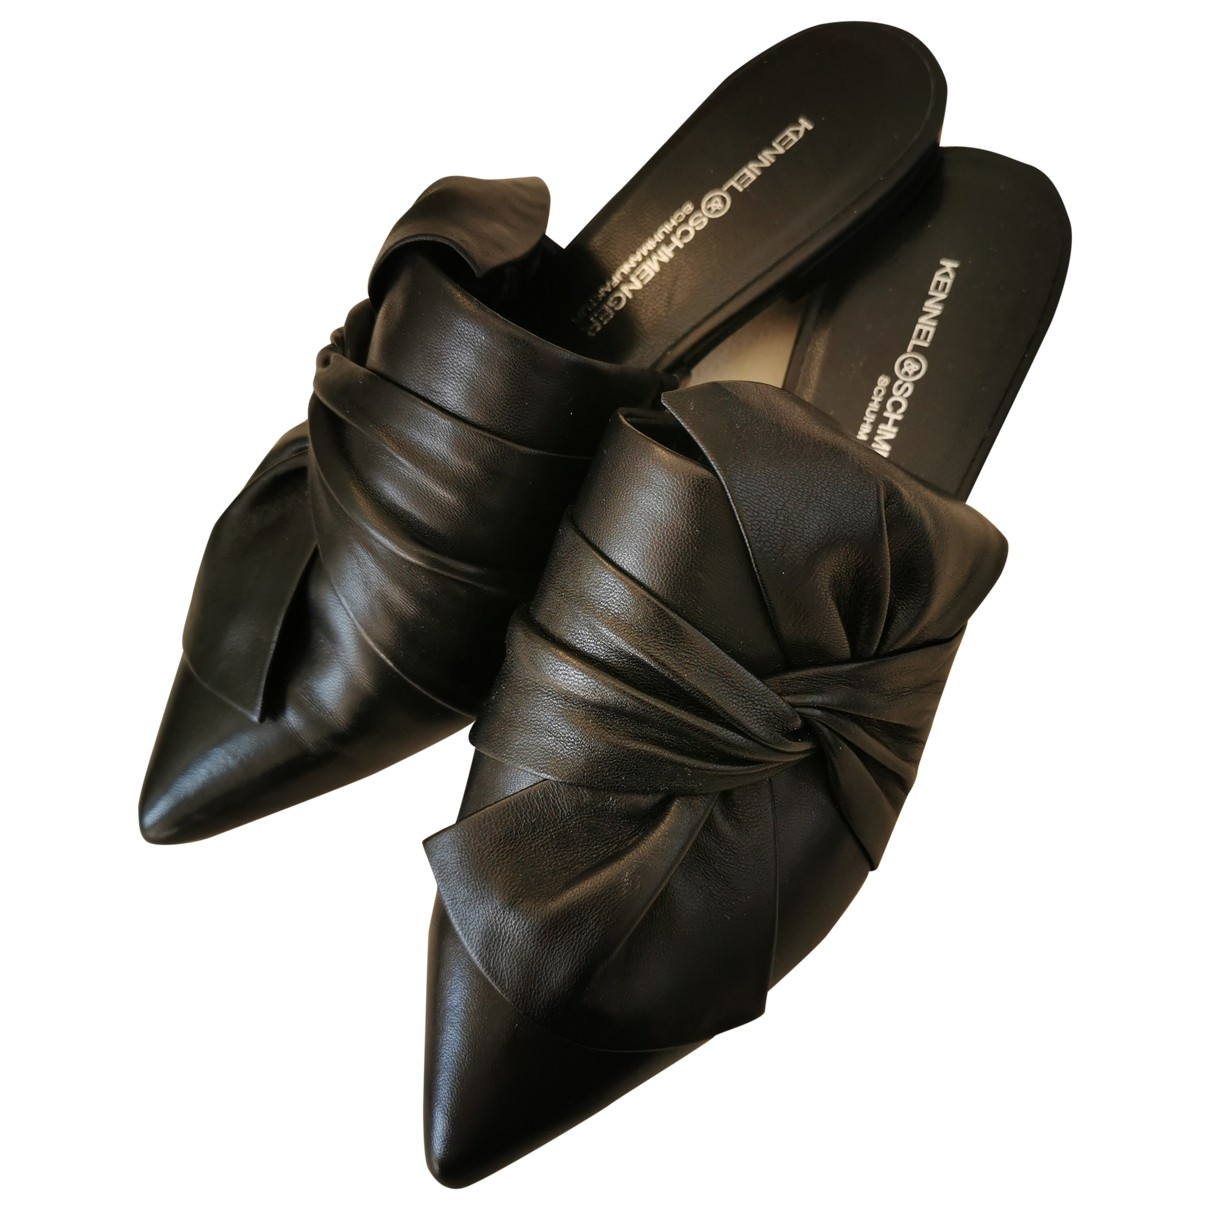 Kennel Und Schmenger \N Black Leather Mules & Clogs for Women 4.5 US